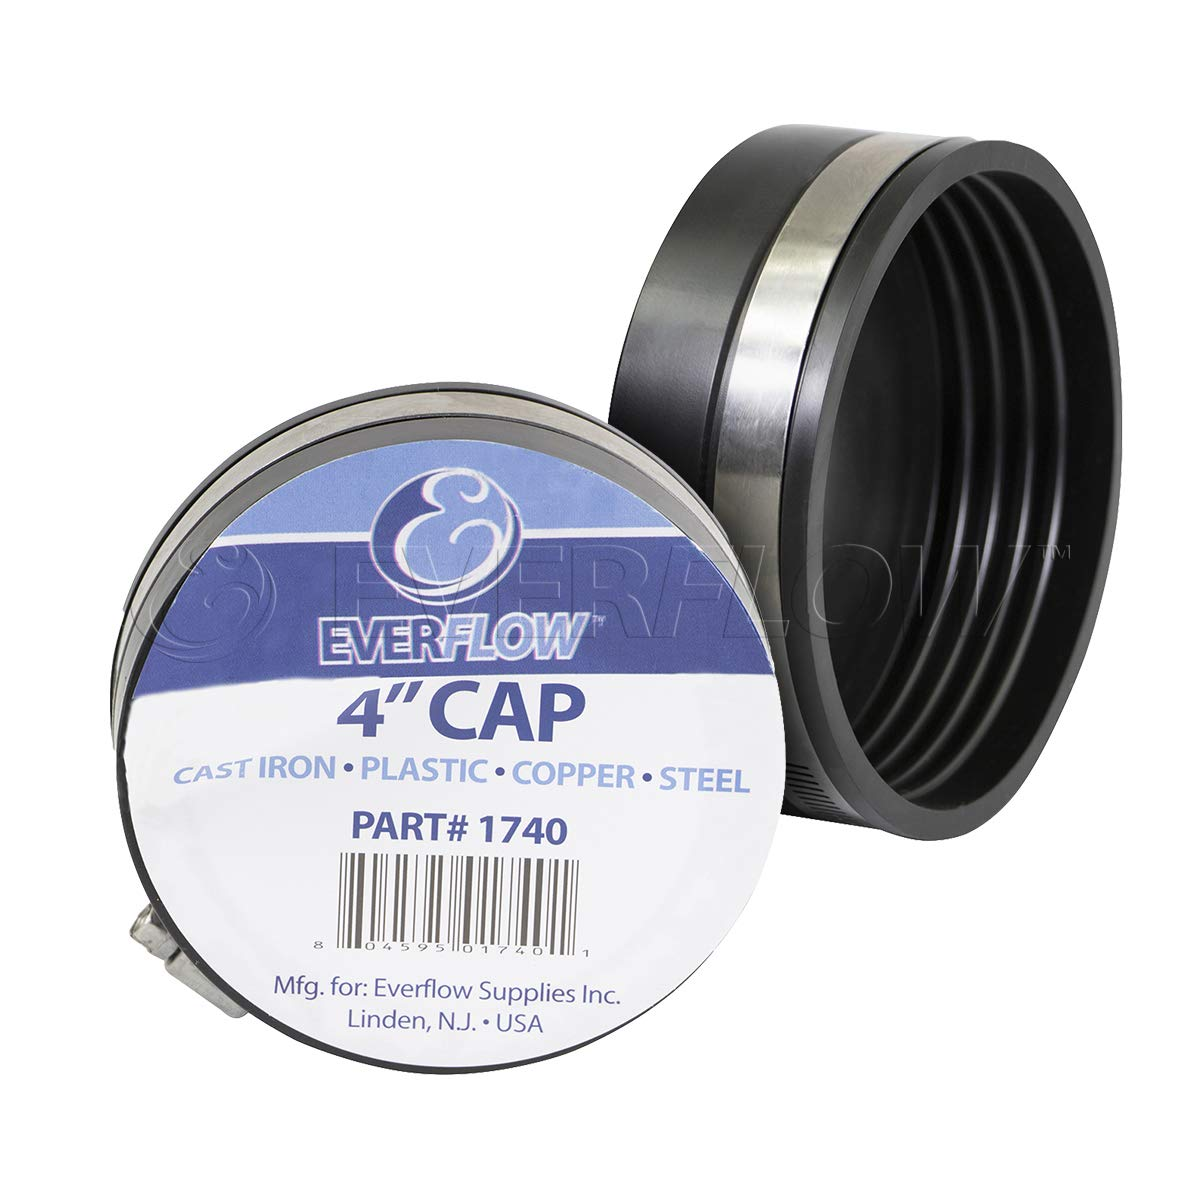 EVERCONNECT 1740x2 Flexible Pvc Pipe Cap with Stainless Steel Clamps 4 inch Black (pack of 2)